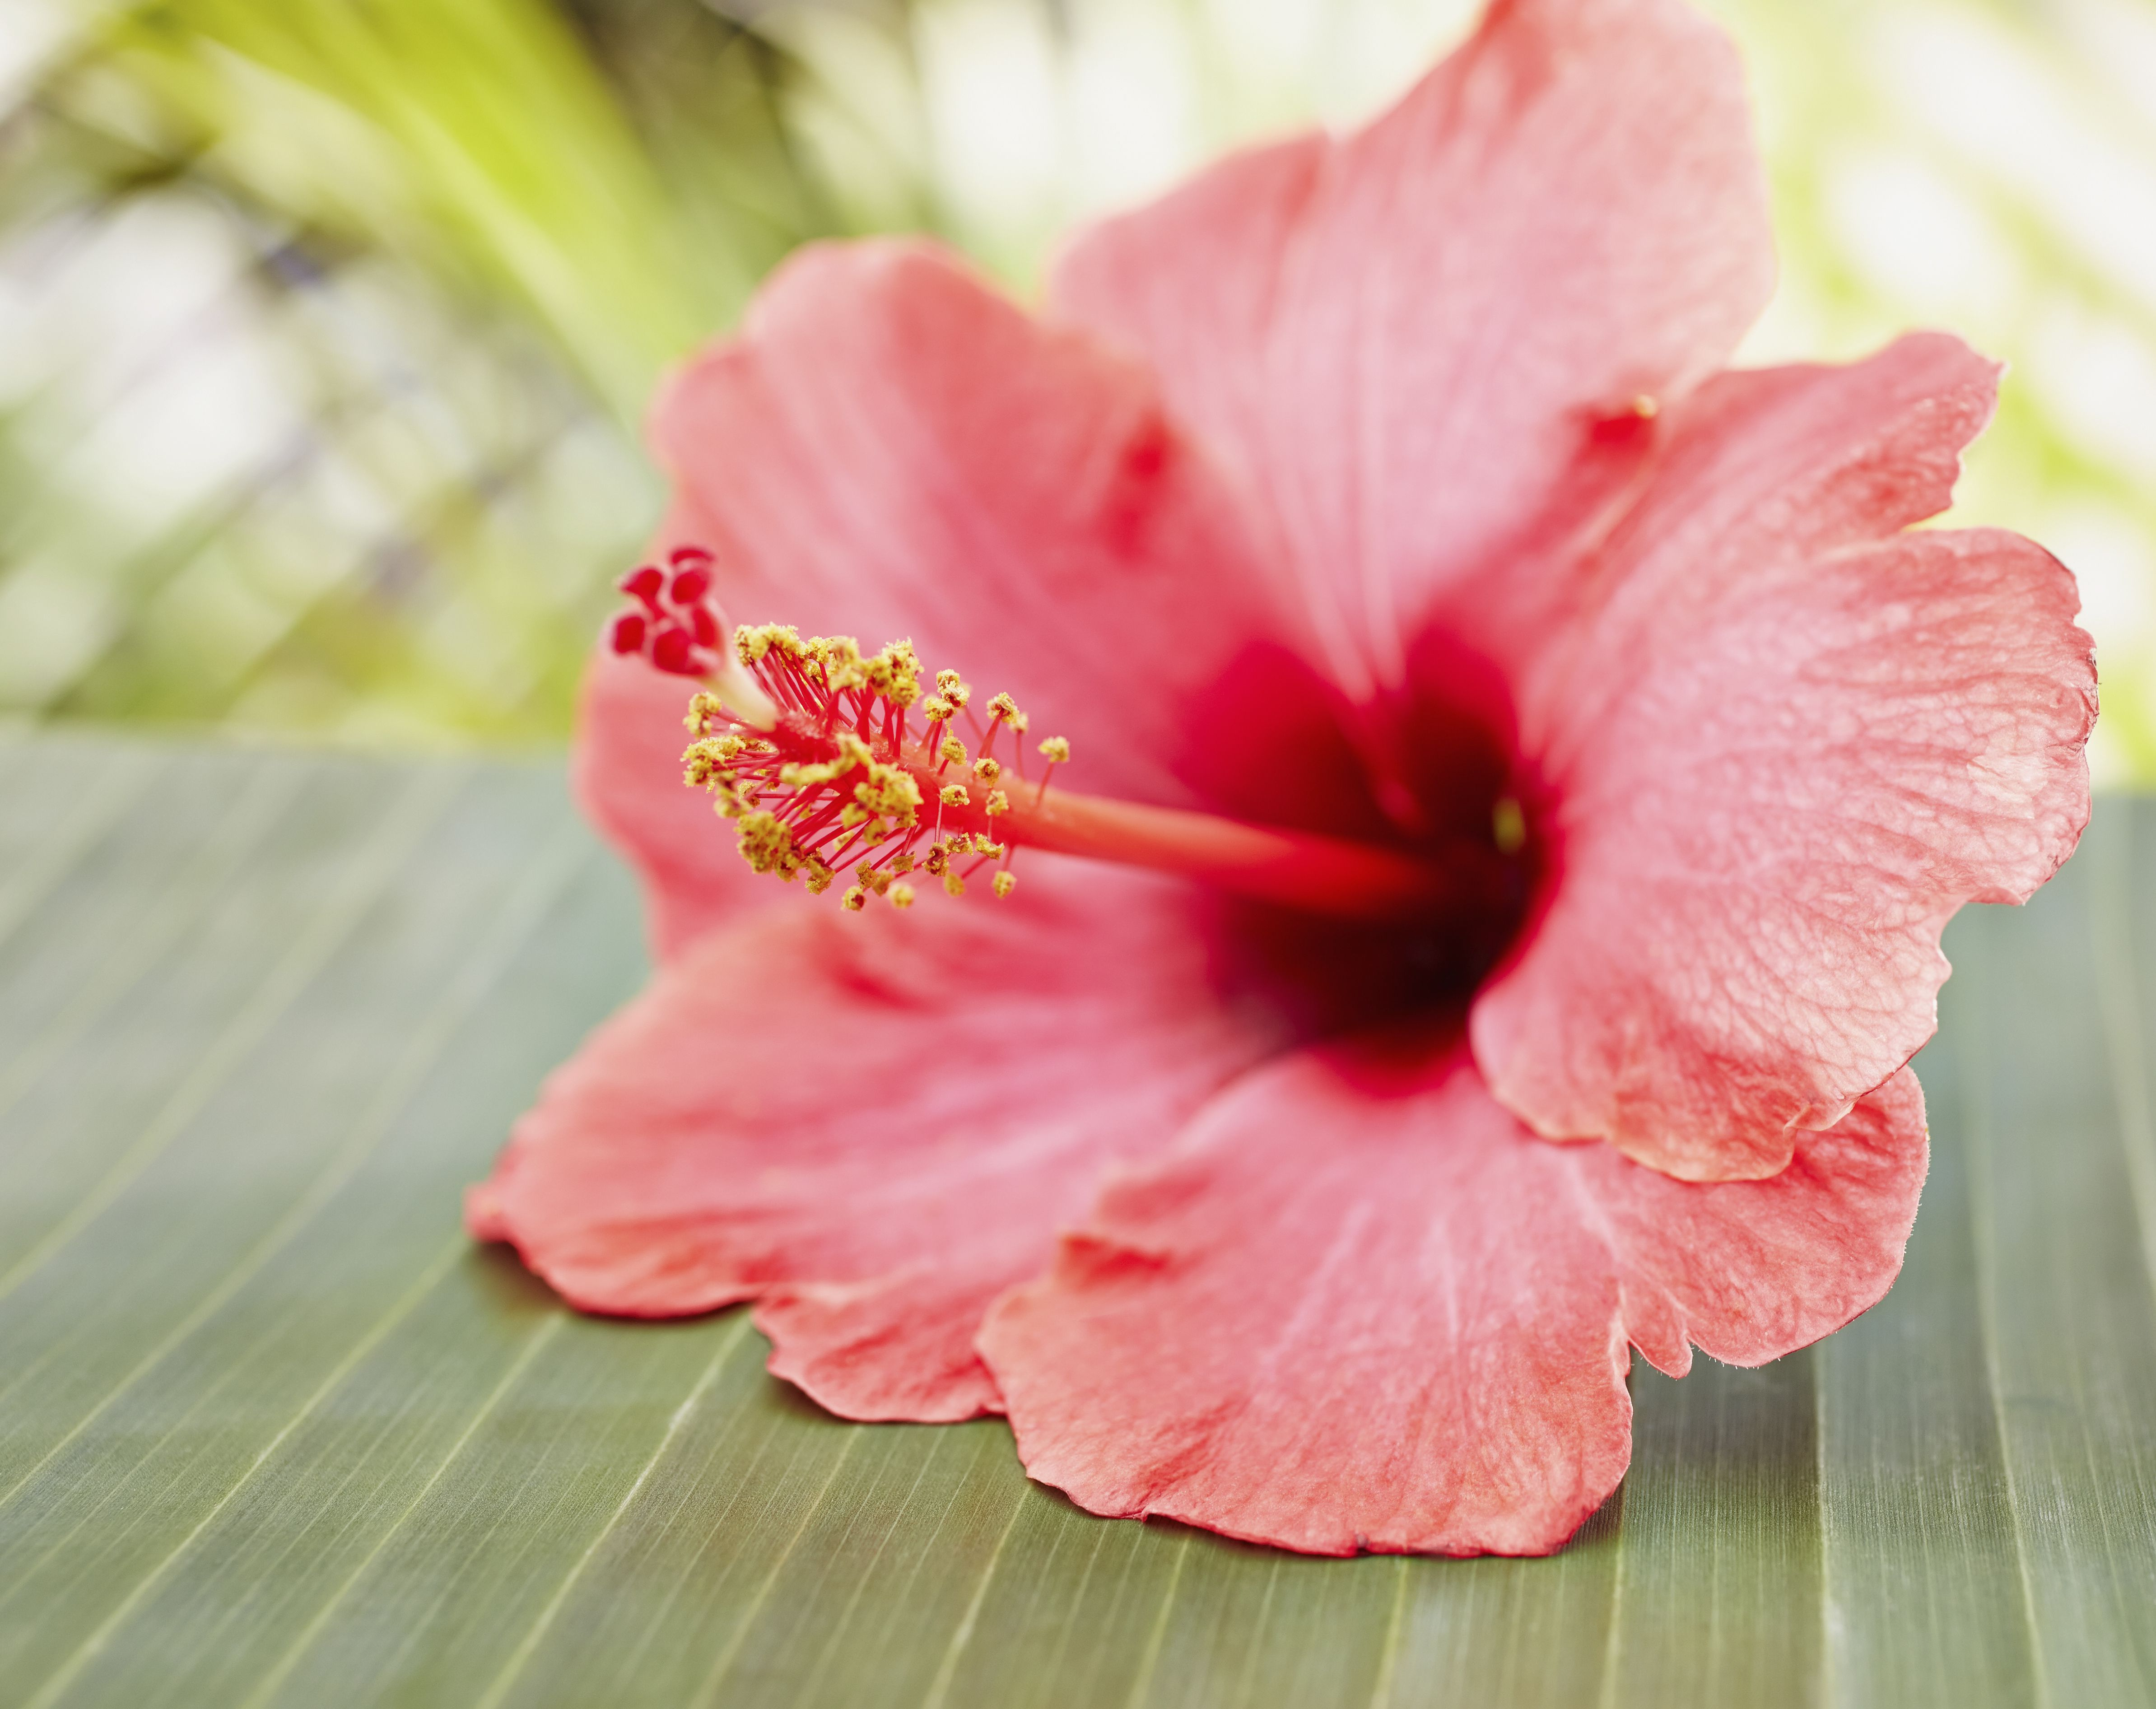 Names Of Common Flowers In Mandarin Chinese